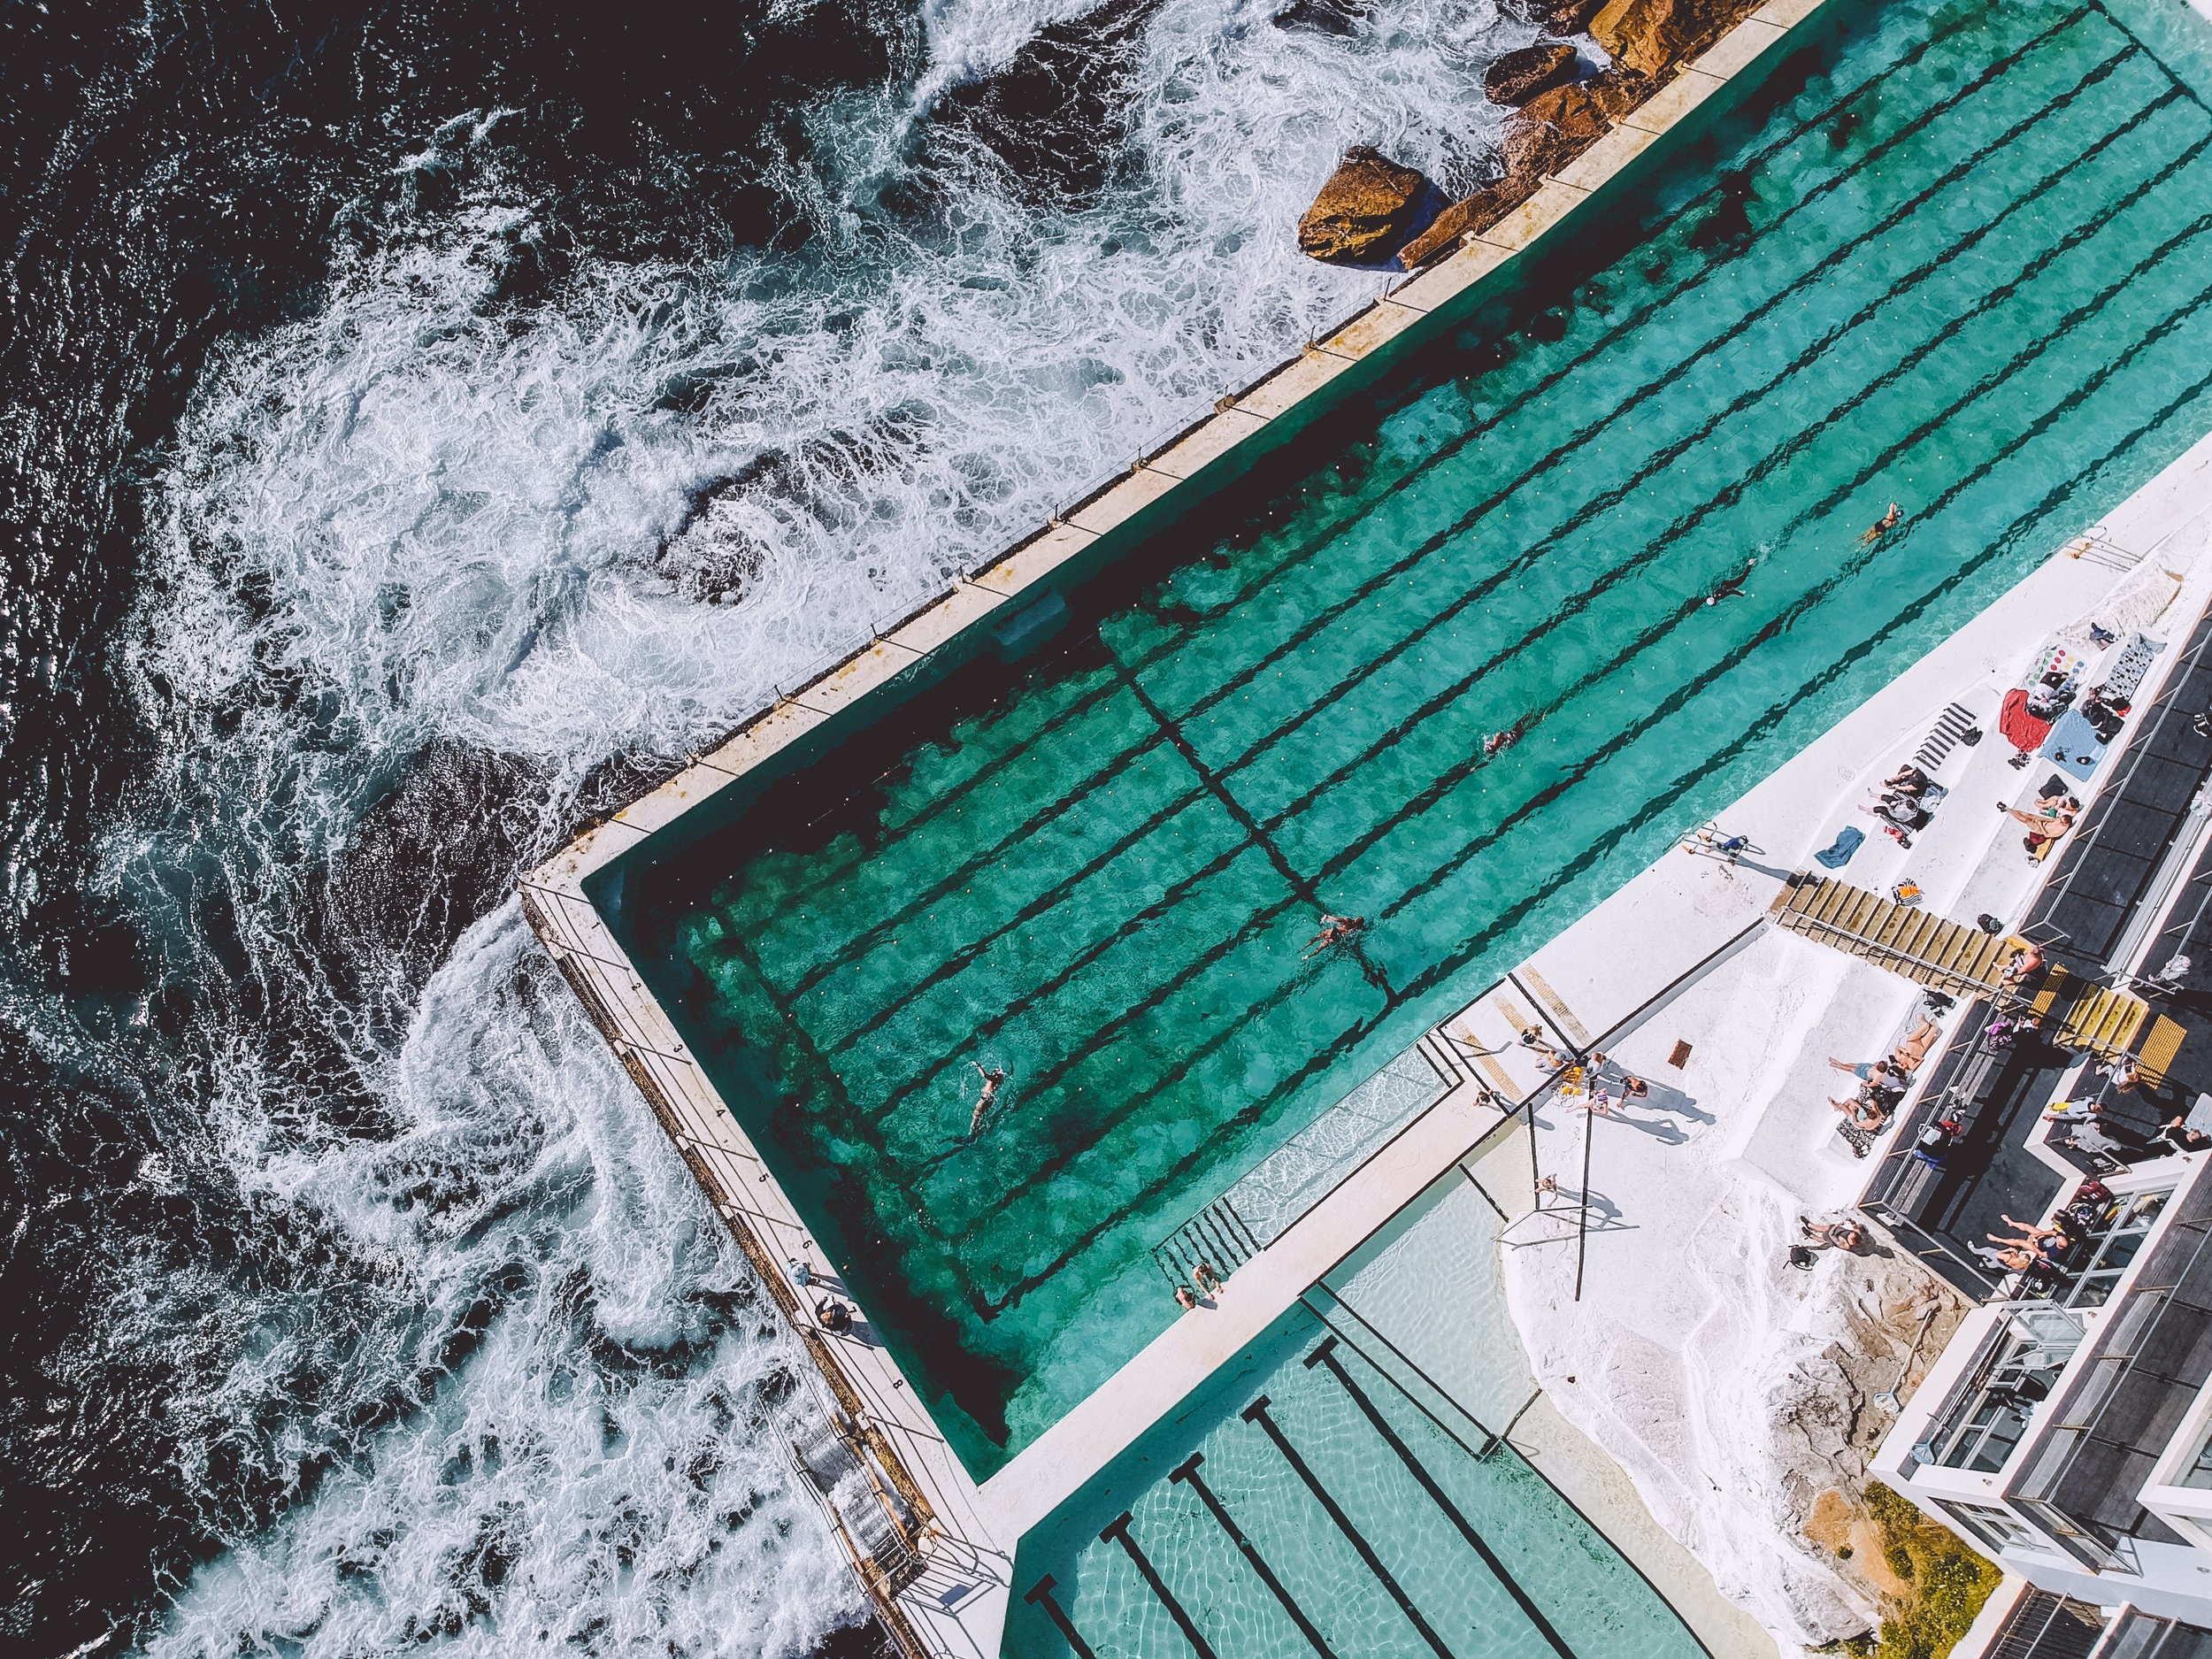 aerial view photography of pool with people